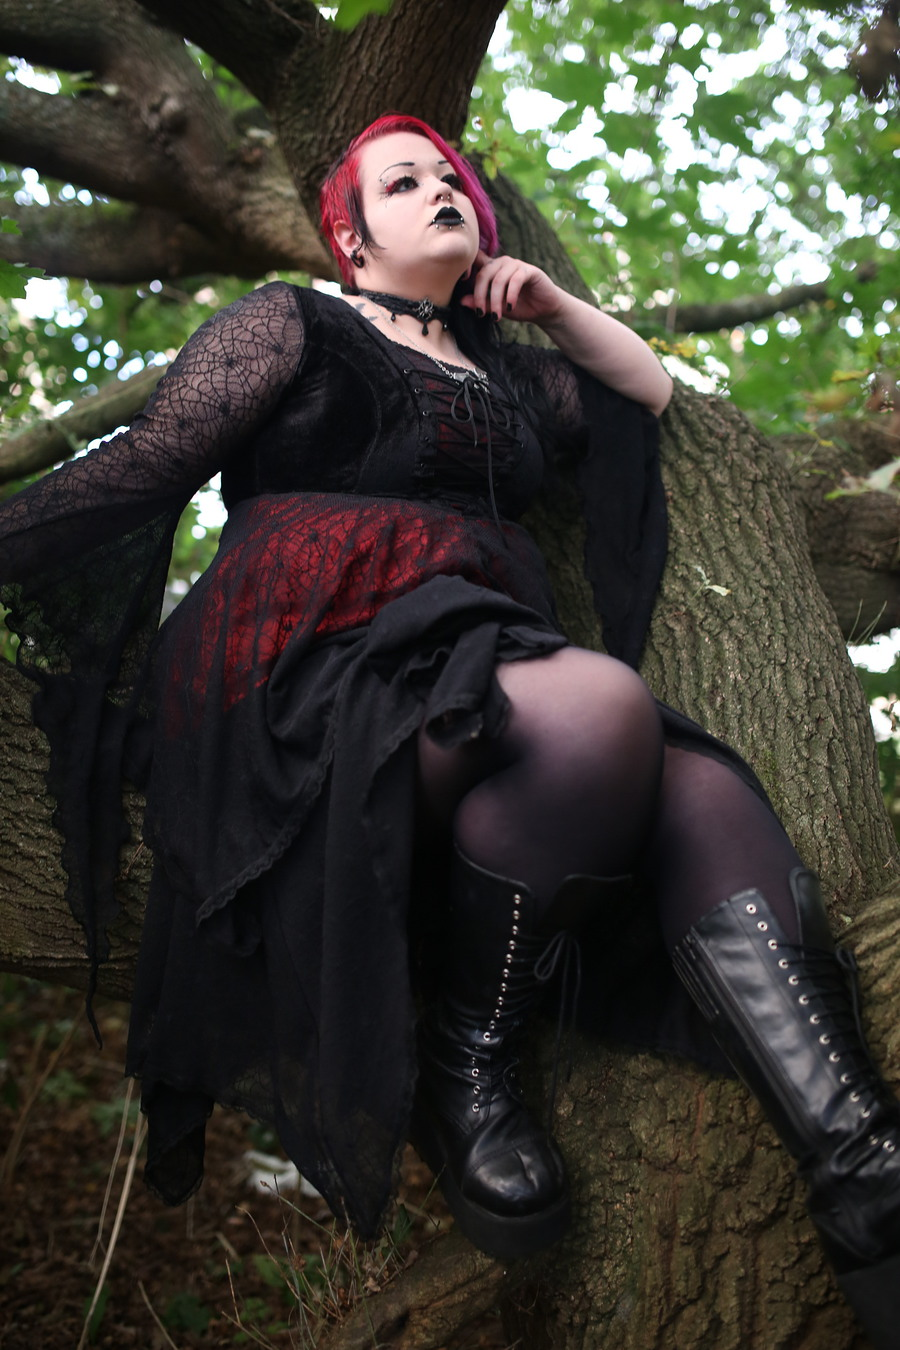 Goff in a tree / Photography by swchughes, Model Alice Autopsy / Uploaded 10th December 2017 @ 02:38 PM